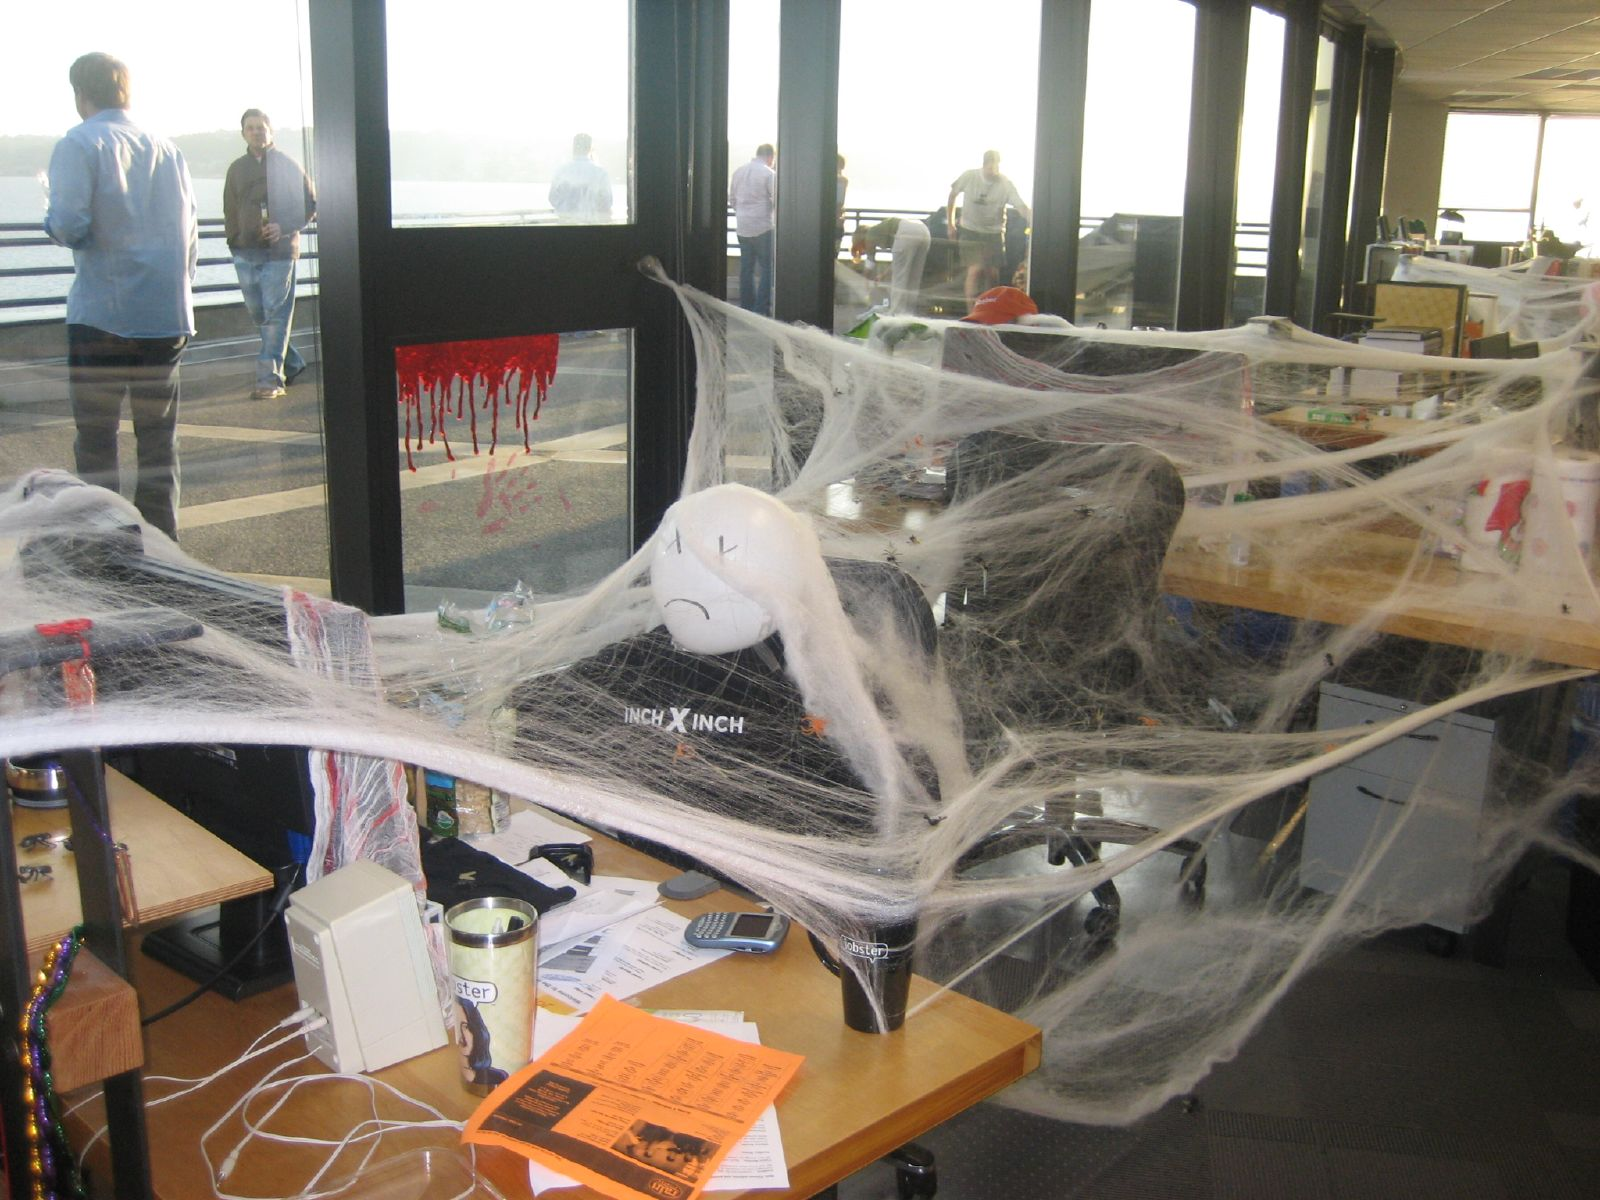 Office prank where desks have been covered with Halloween effects. (Courtesy of Joe Goldberg)